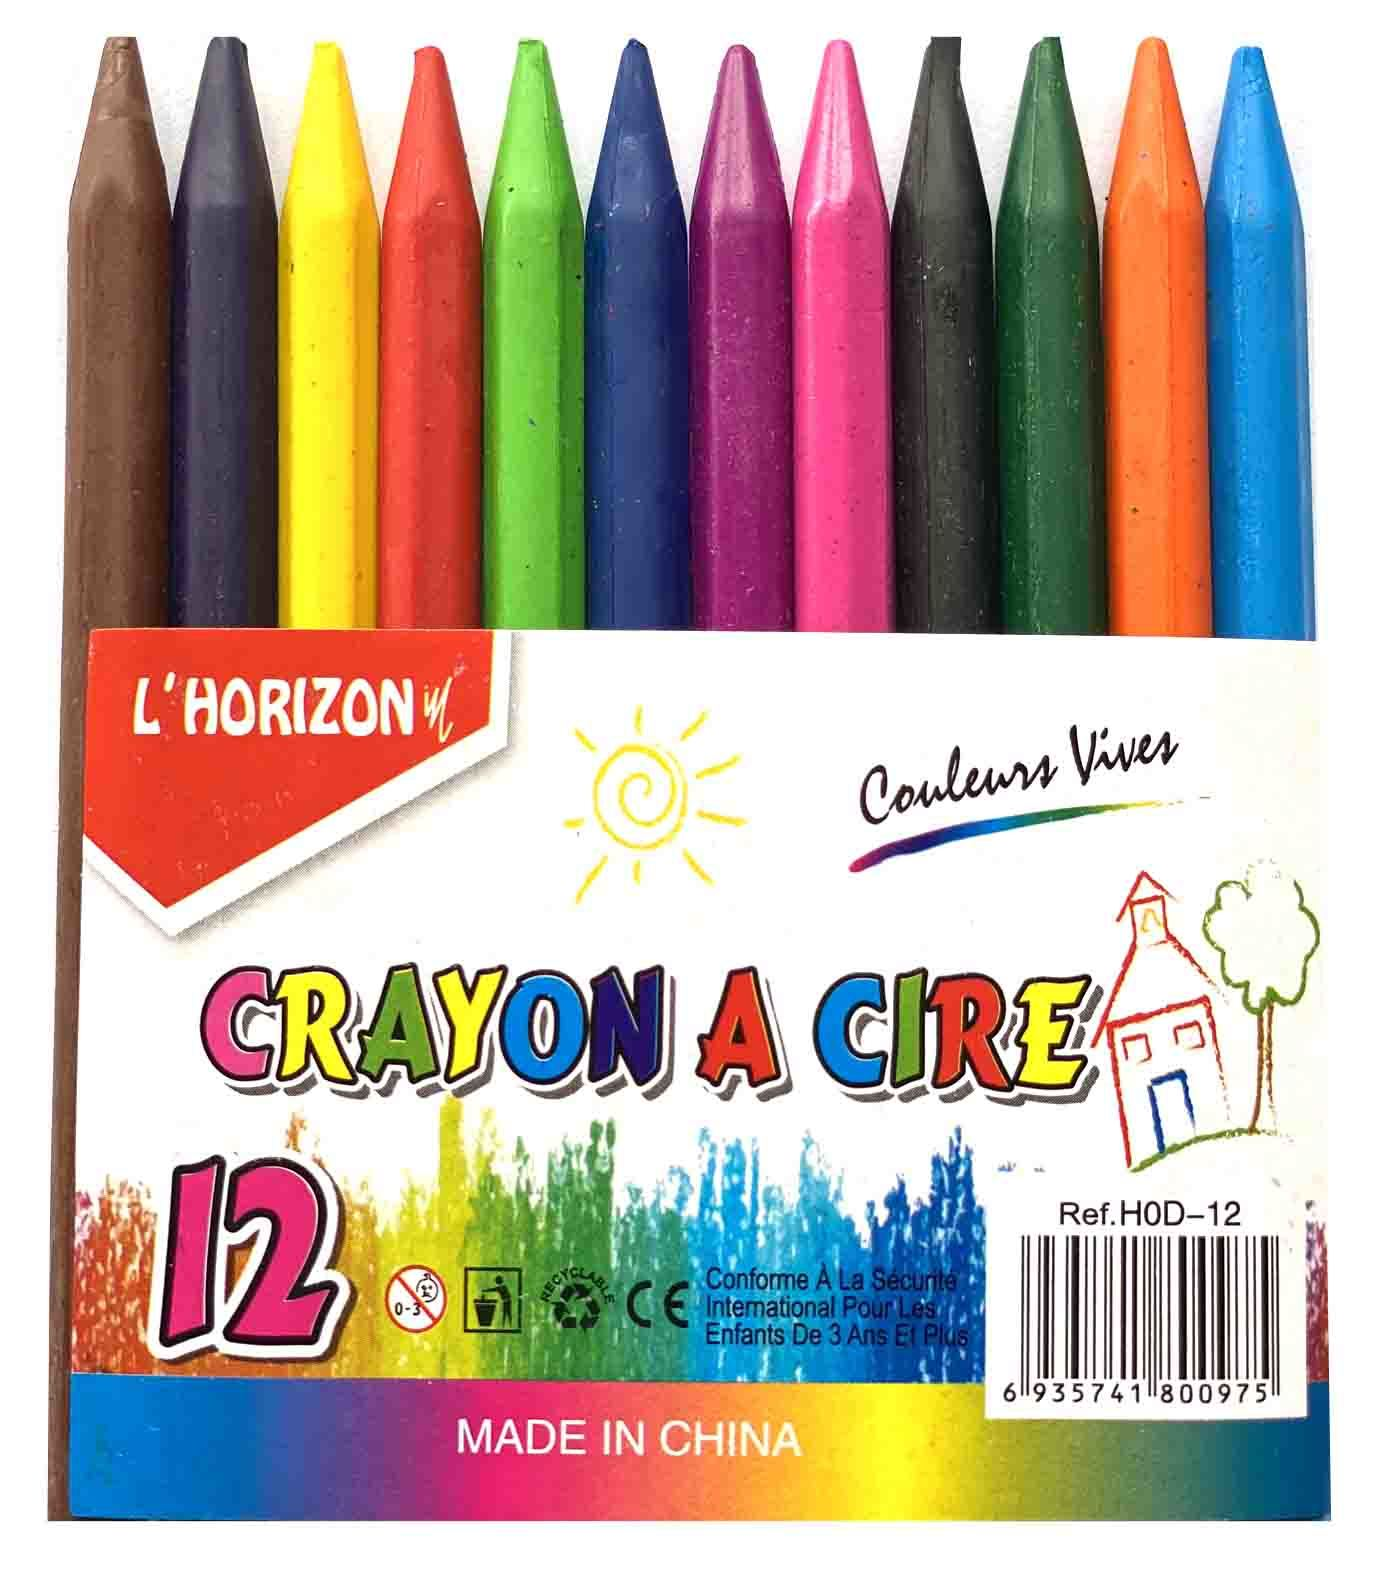 12 pcs crayons new.jpg